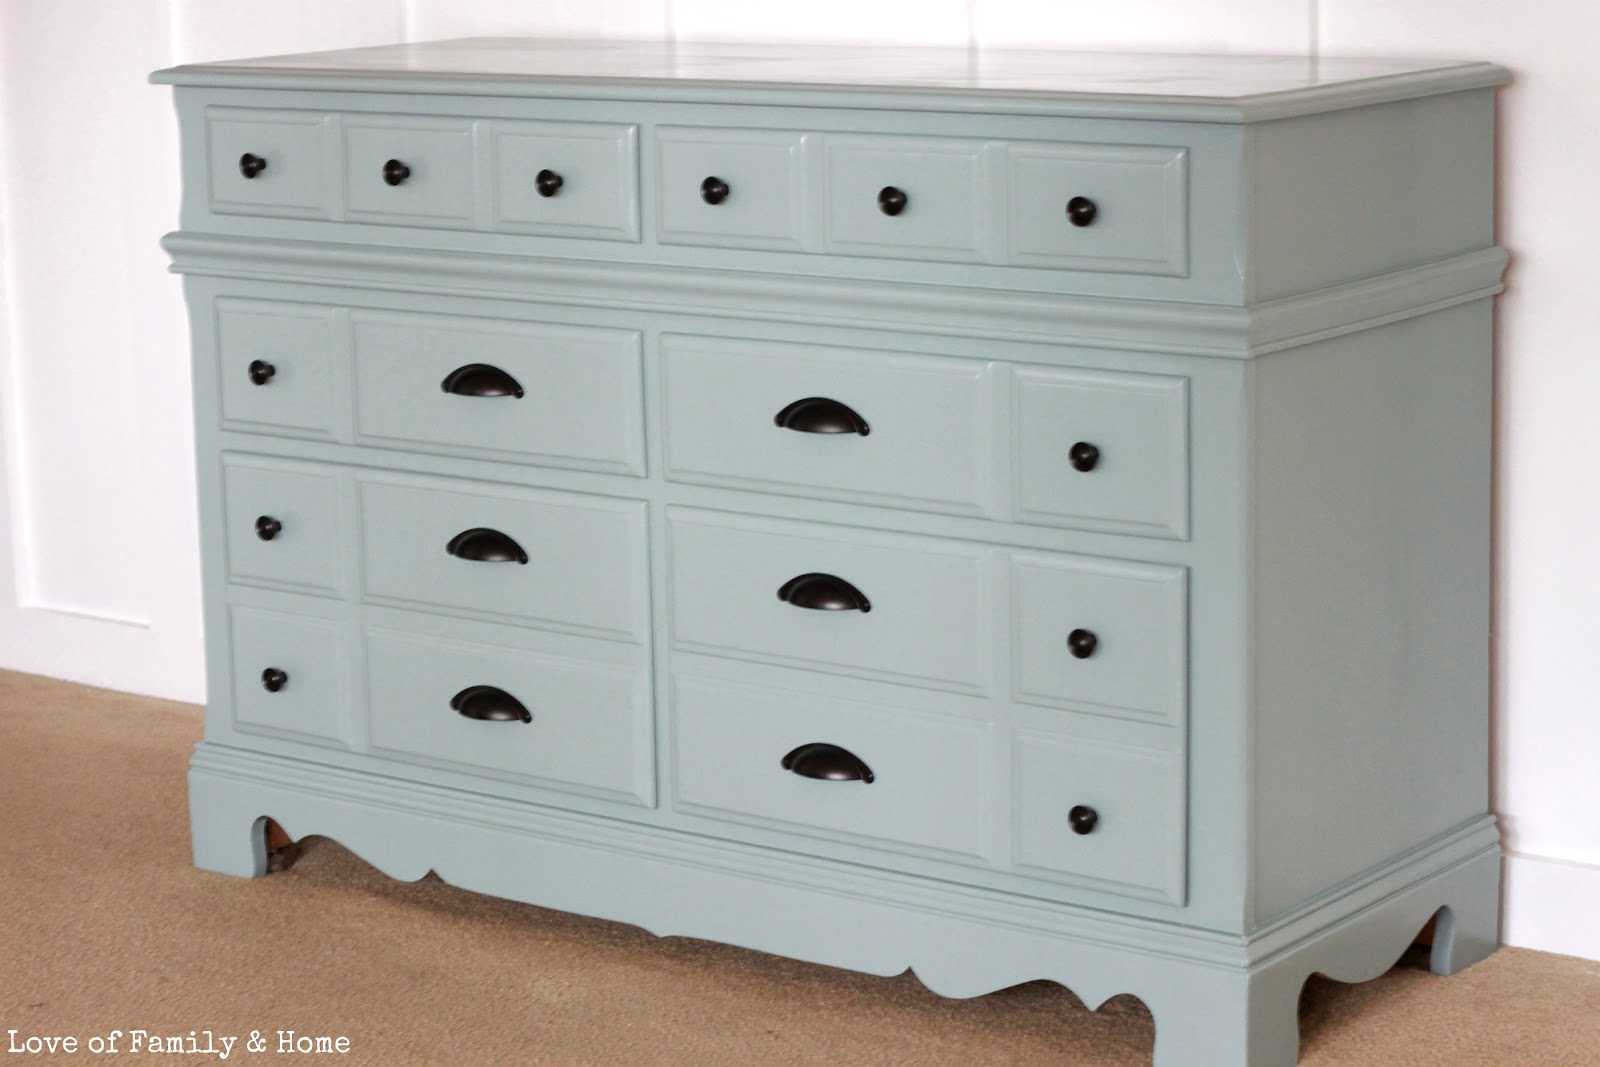 Used Furniture About Craigslist Furniture Online